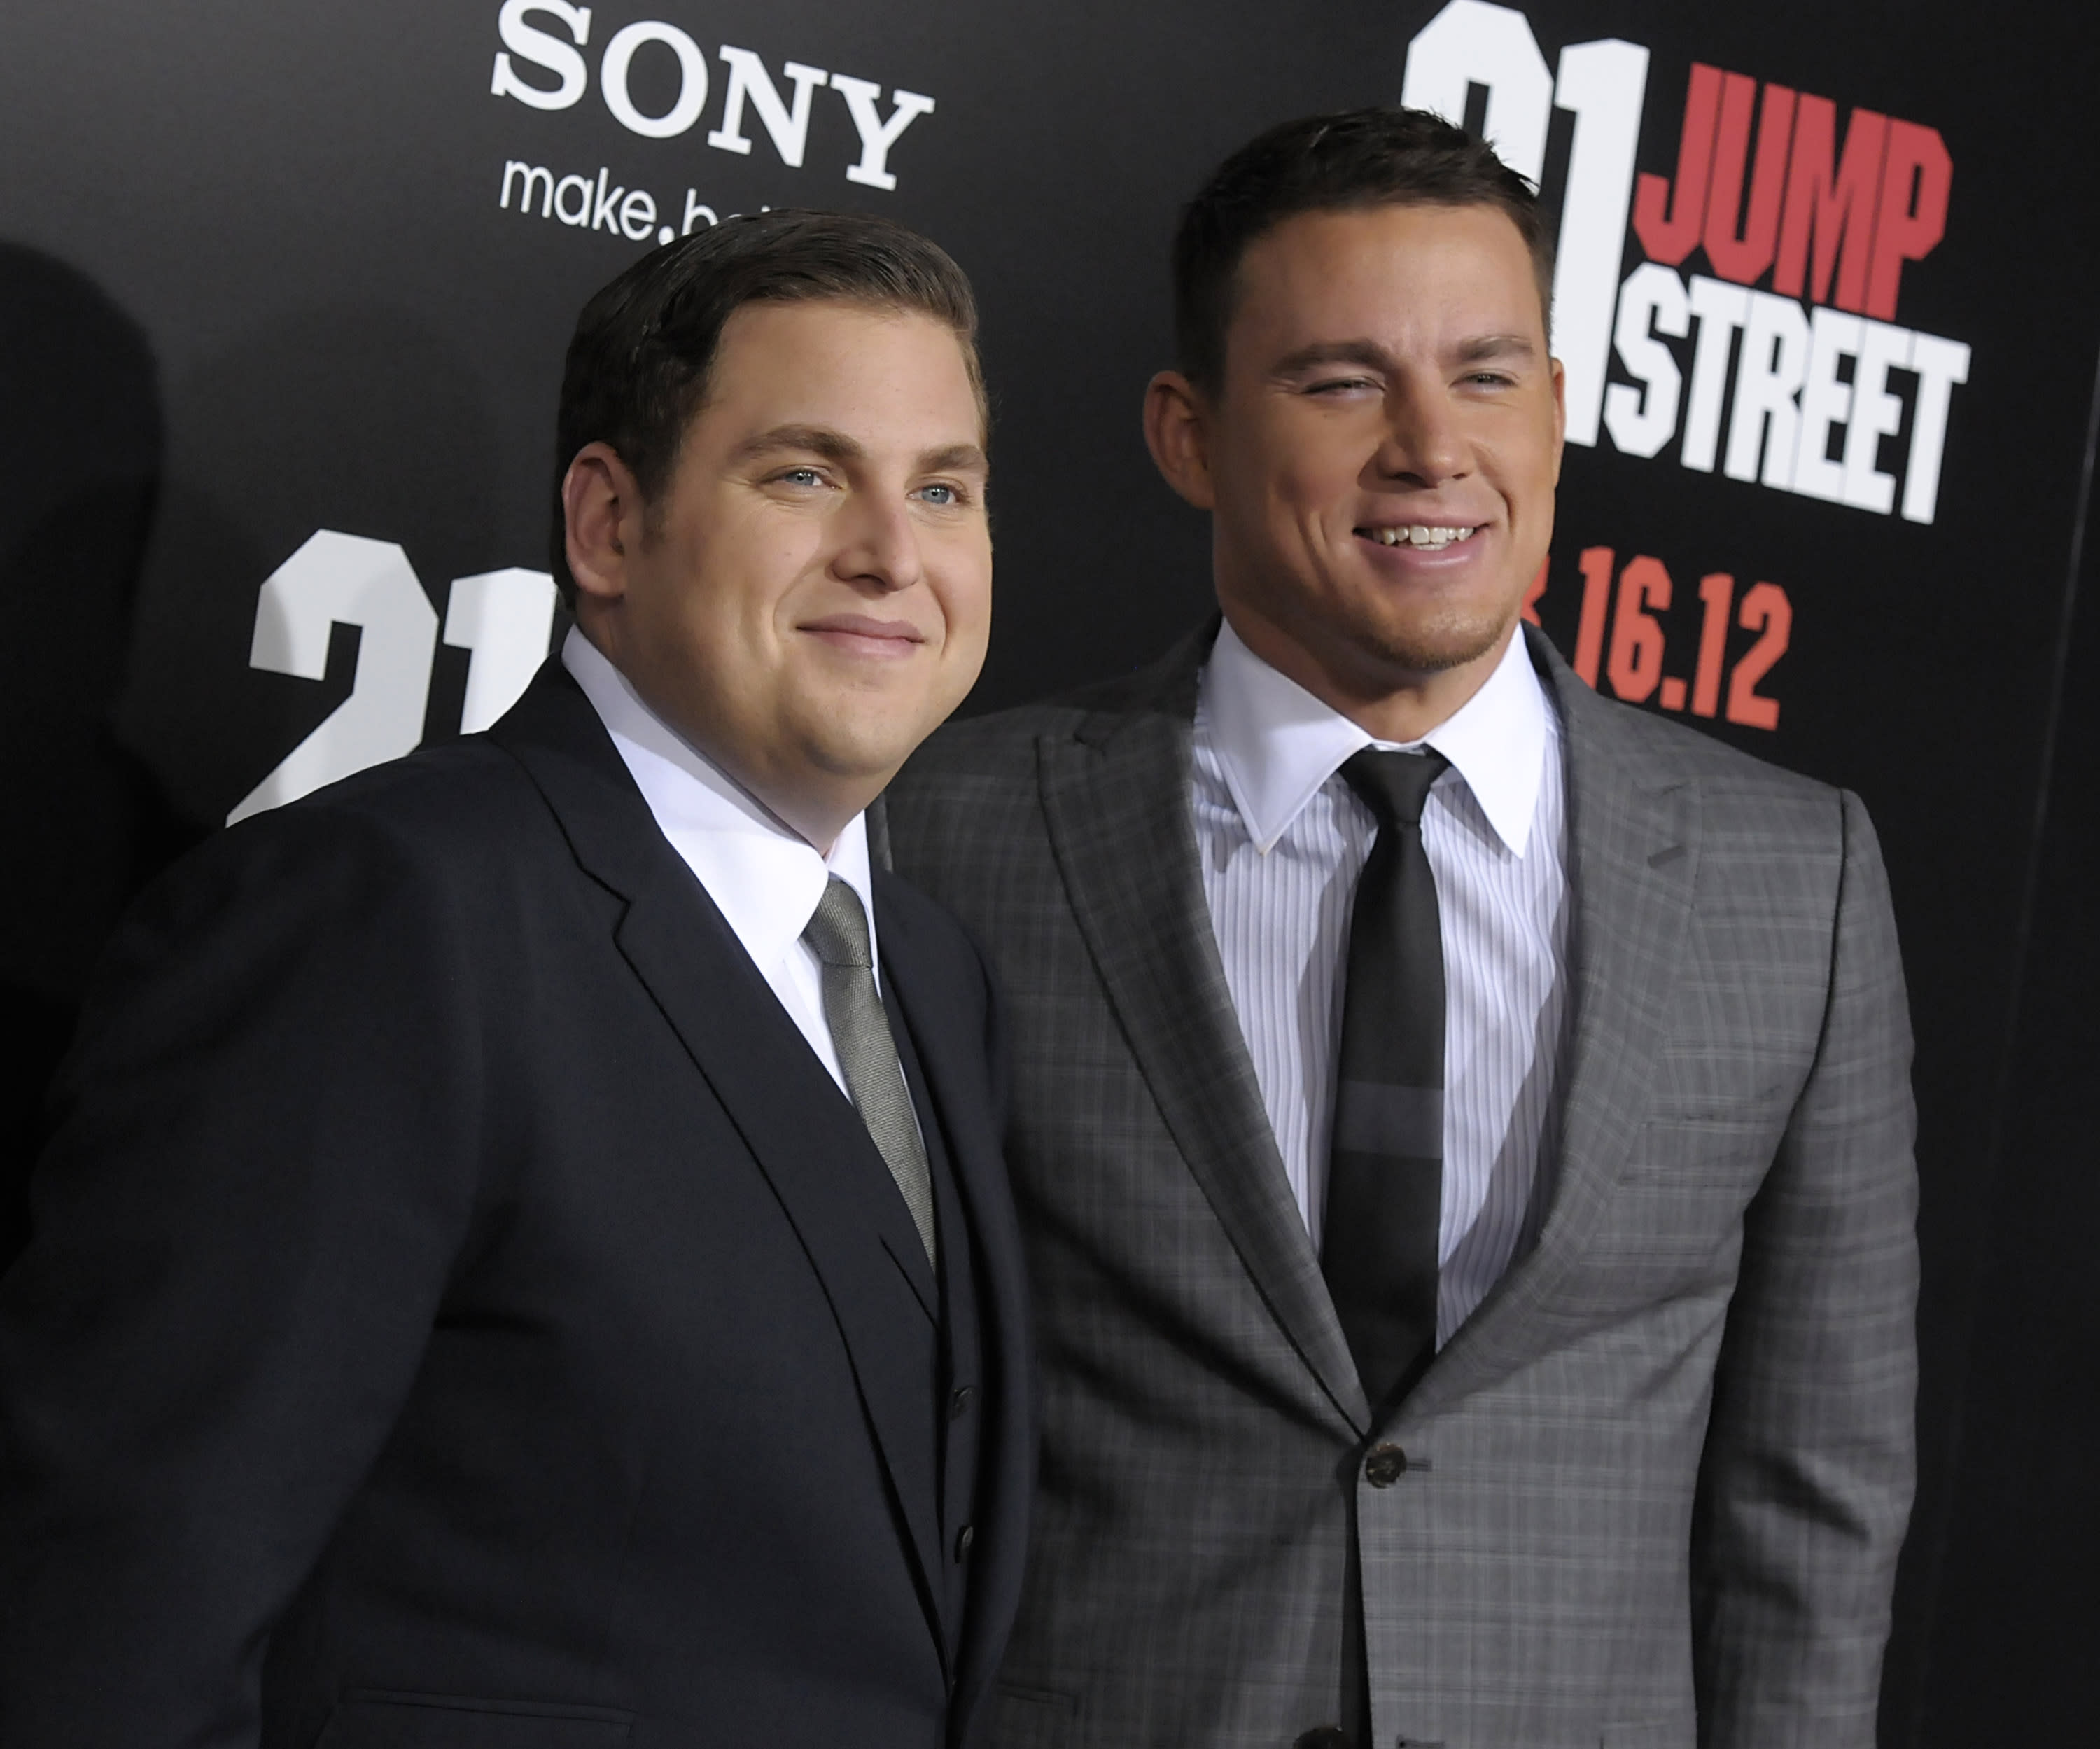 """Actor Jonah Hill, left, and actor Channing Tatum arrive at the premiere of the feature film """"21 Jump Street"""" in Los Angeles on Tuesday, March 13, 2012. (AP Photo/Dan Steinberg)"""